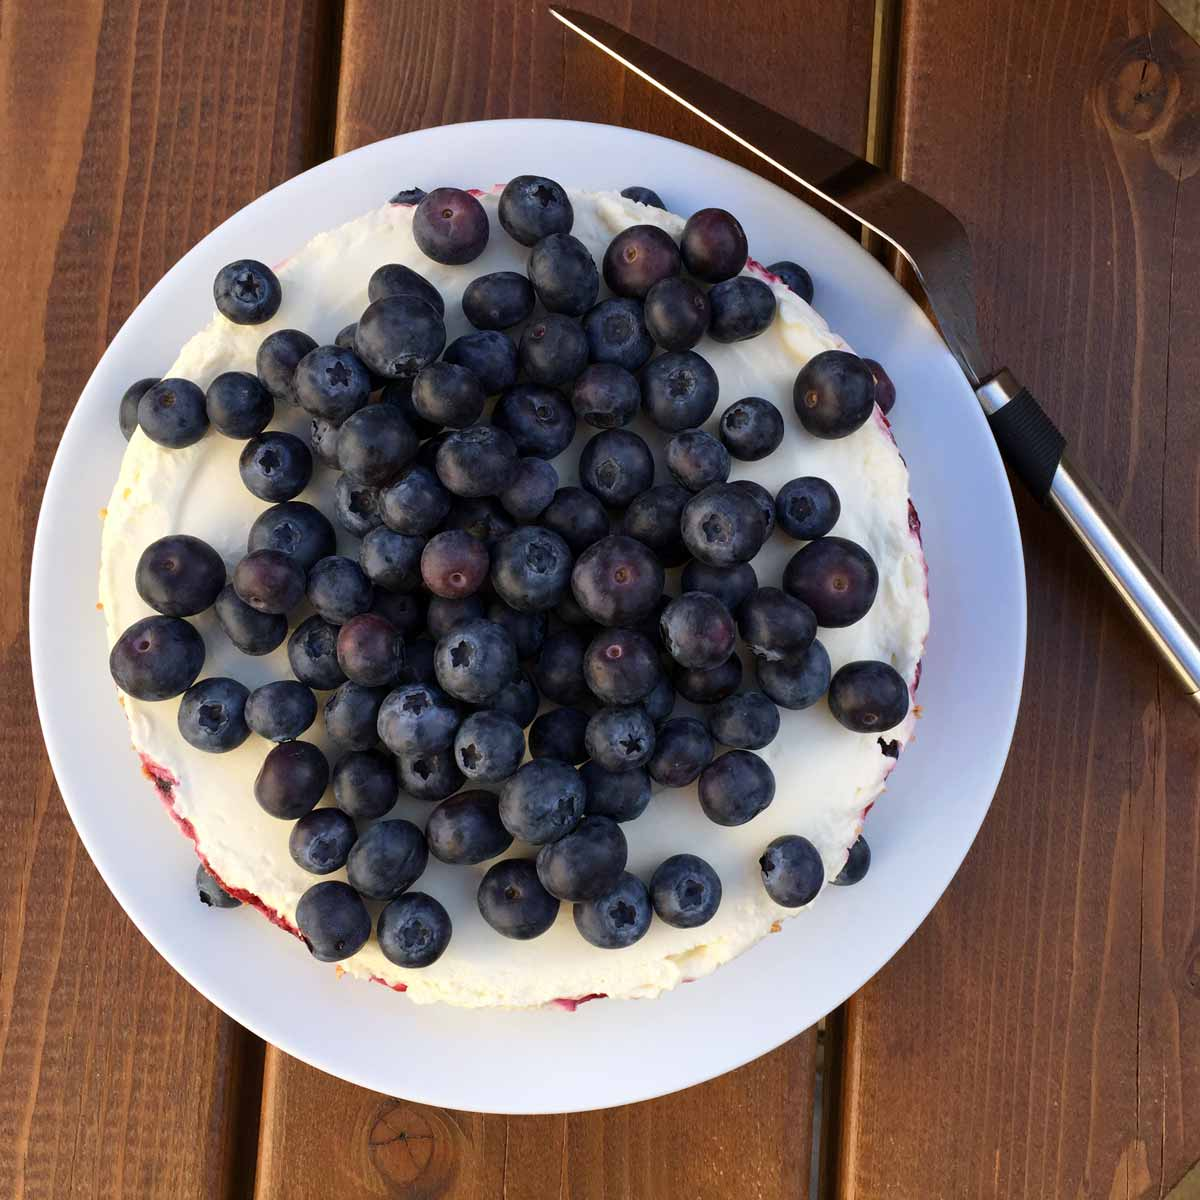 This berries and amaretti cheesecake is one of my all-time-favorite dessert recipe, a balanced and absolutely delicious treat.